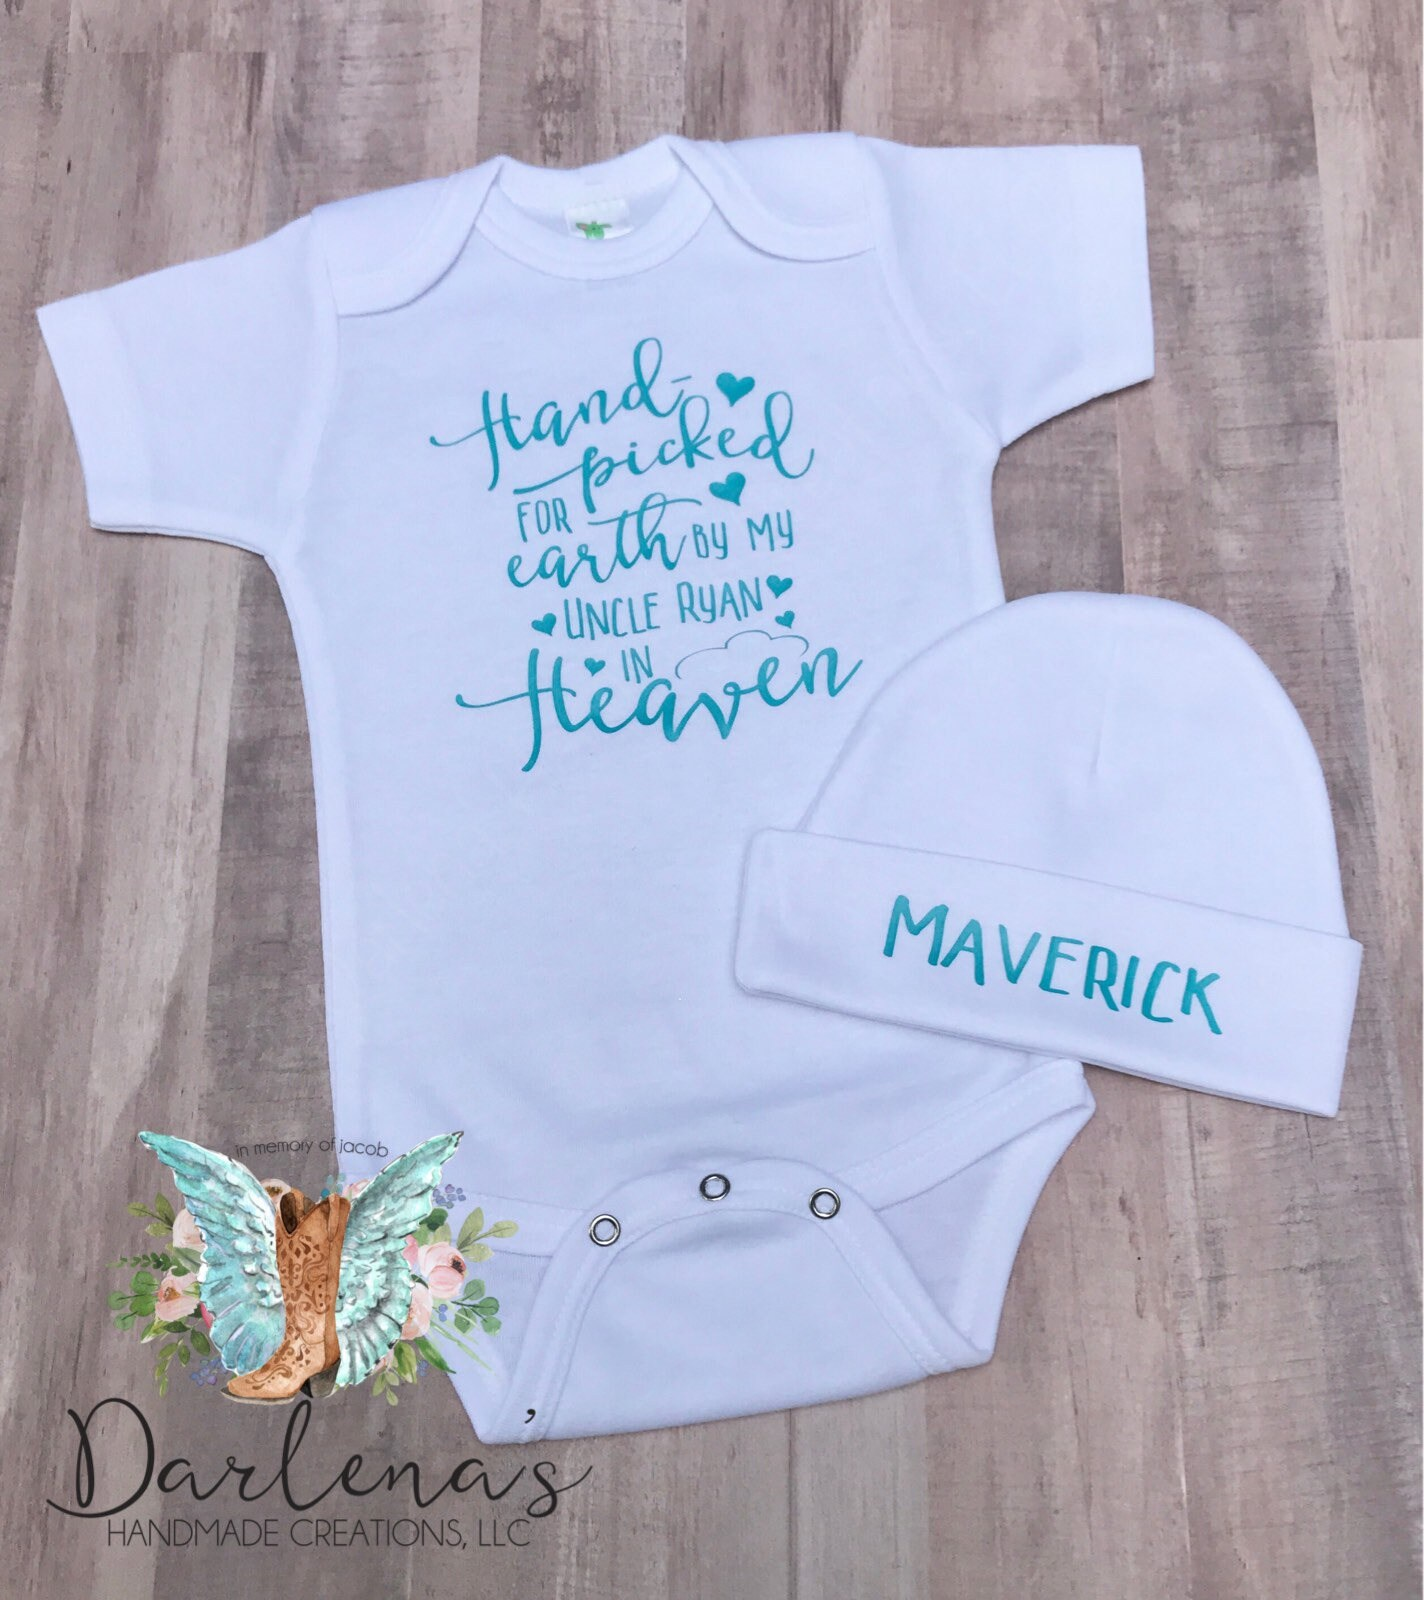 In Memory Gift SAMPLE SALE- Hand picked for Earth by Heaven Bodysuit New baby Gift Personalized In Memory Hand picked for Earth Shirt